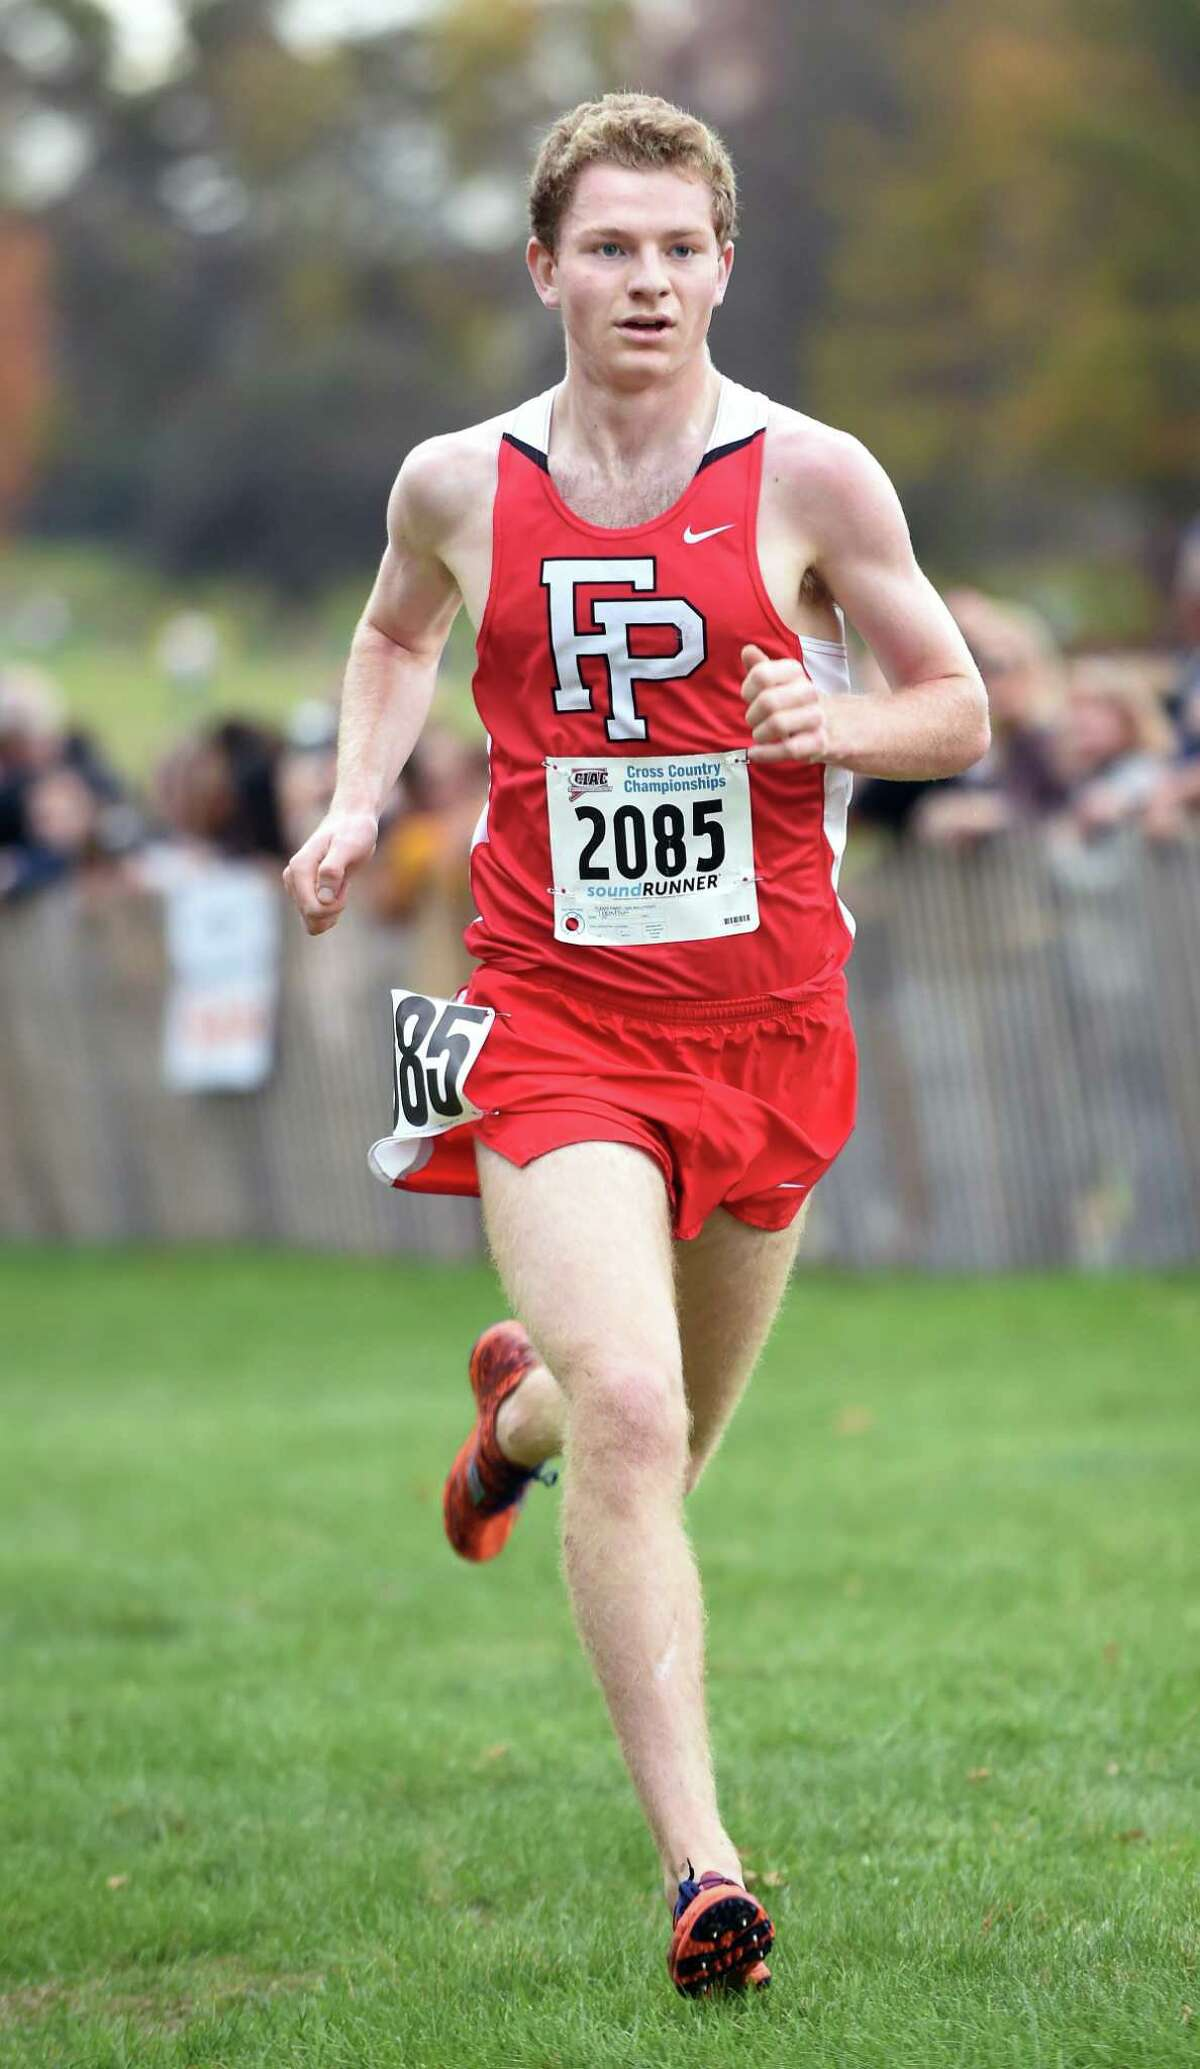 Drew Thompson of Fairfield Prep nears the finish line placing first in the 2017 CIAC Fall Championship Boys Cross Country race in Manchester on November 3, 2017.